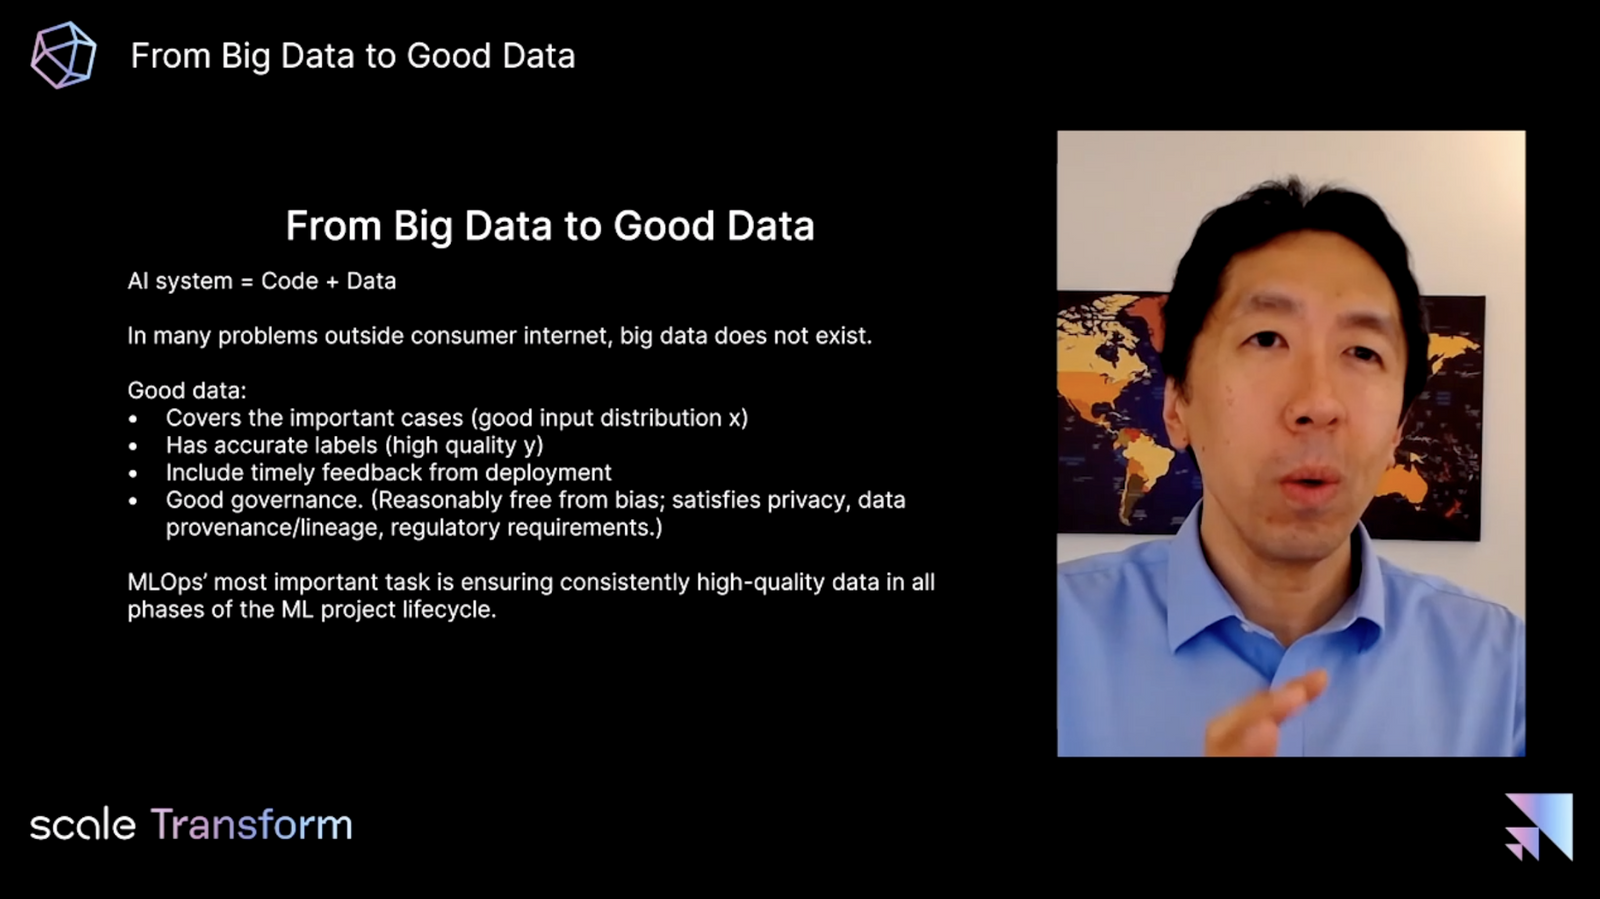 Andrew Ng on the importance of going from big data to good data (not all companies have access to big data)